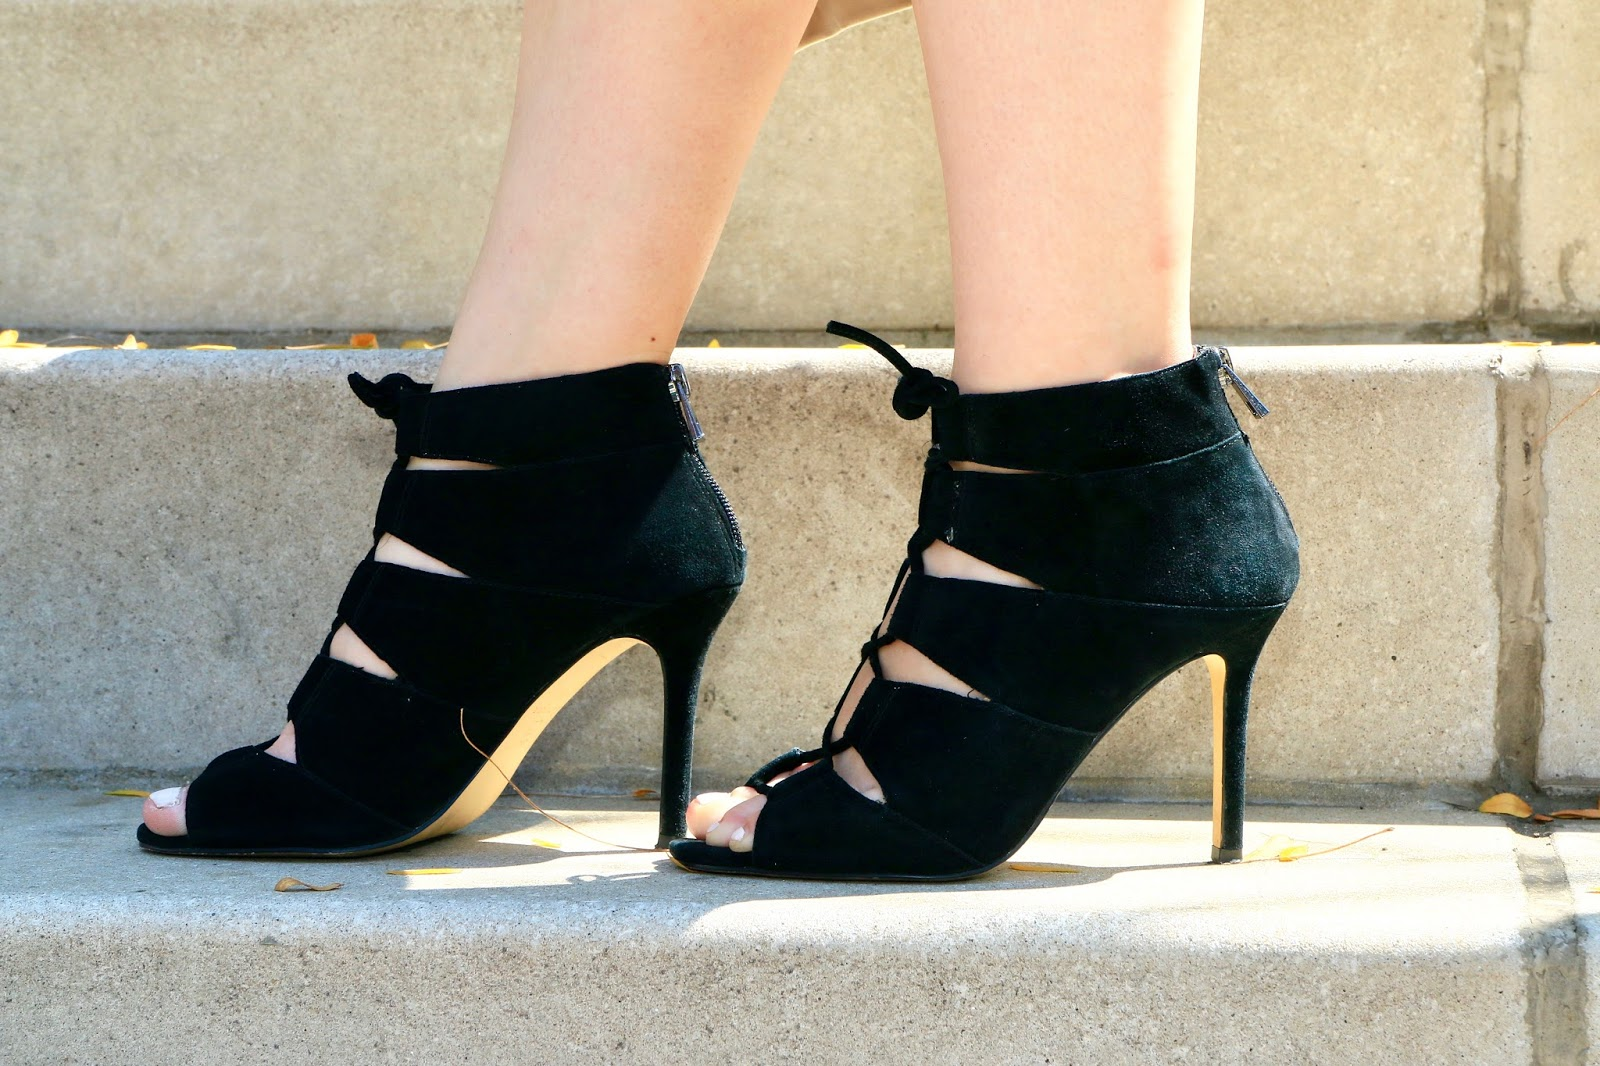 NYC Fashion blogger Kathleen Harper of Kat's Fashion Fix wearing black lace up heels